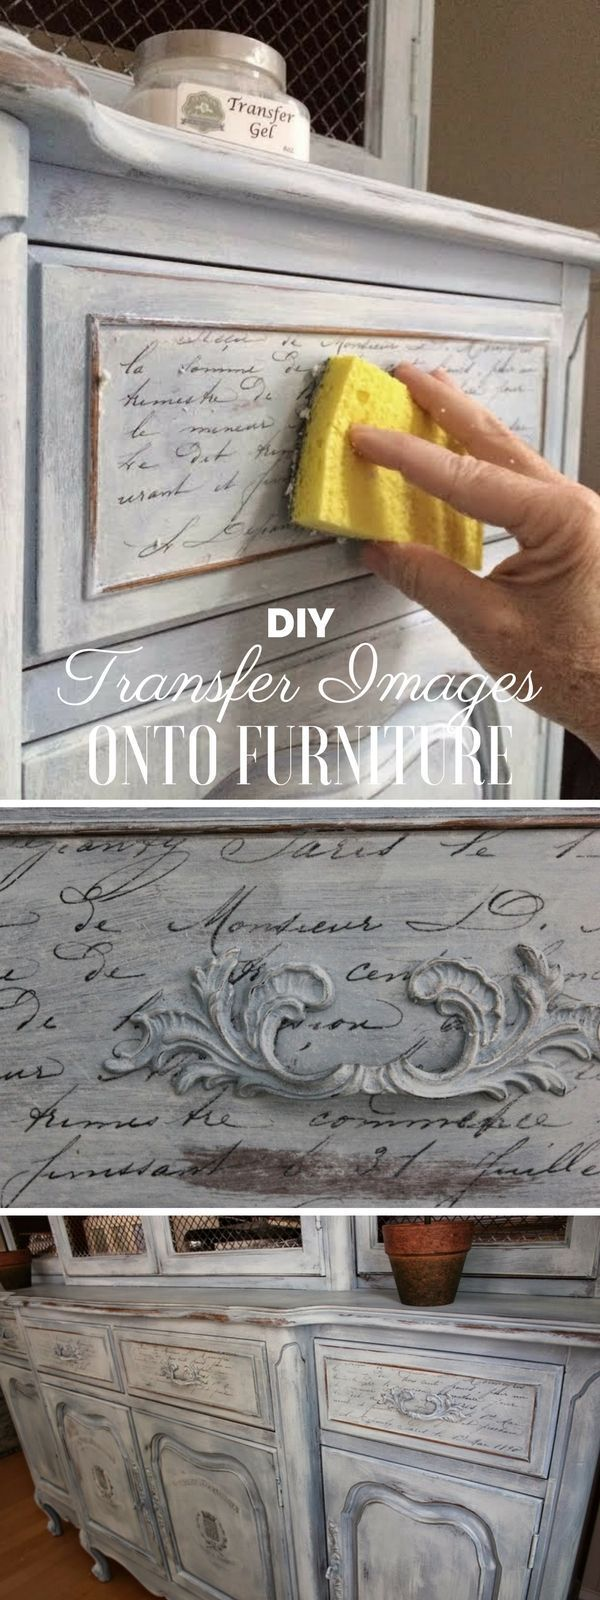 awesome Check out the tutorial: Transfer Images onto Furniture Industry Sta... -